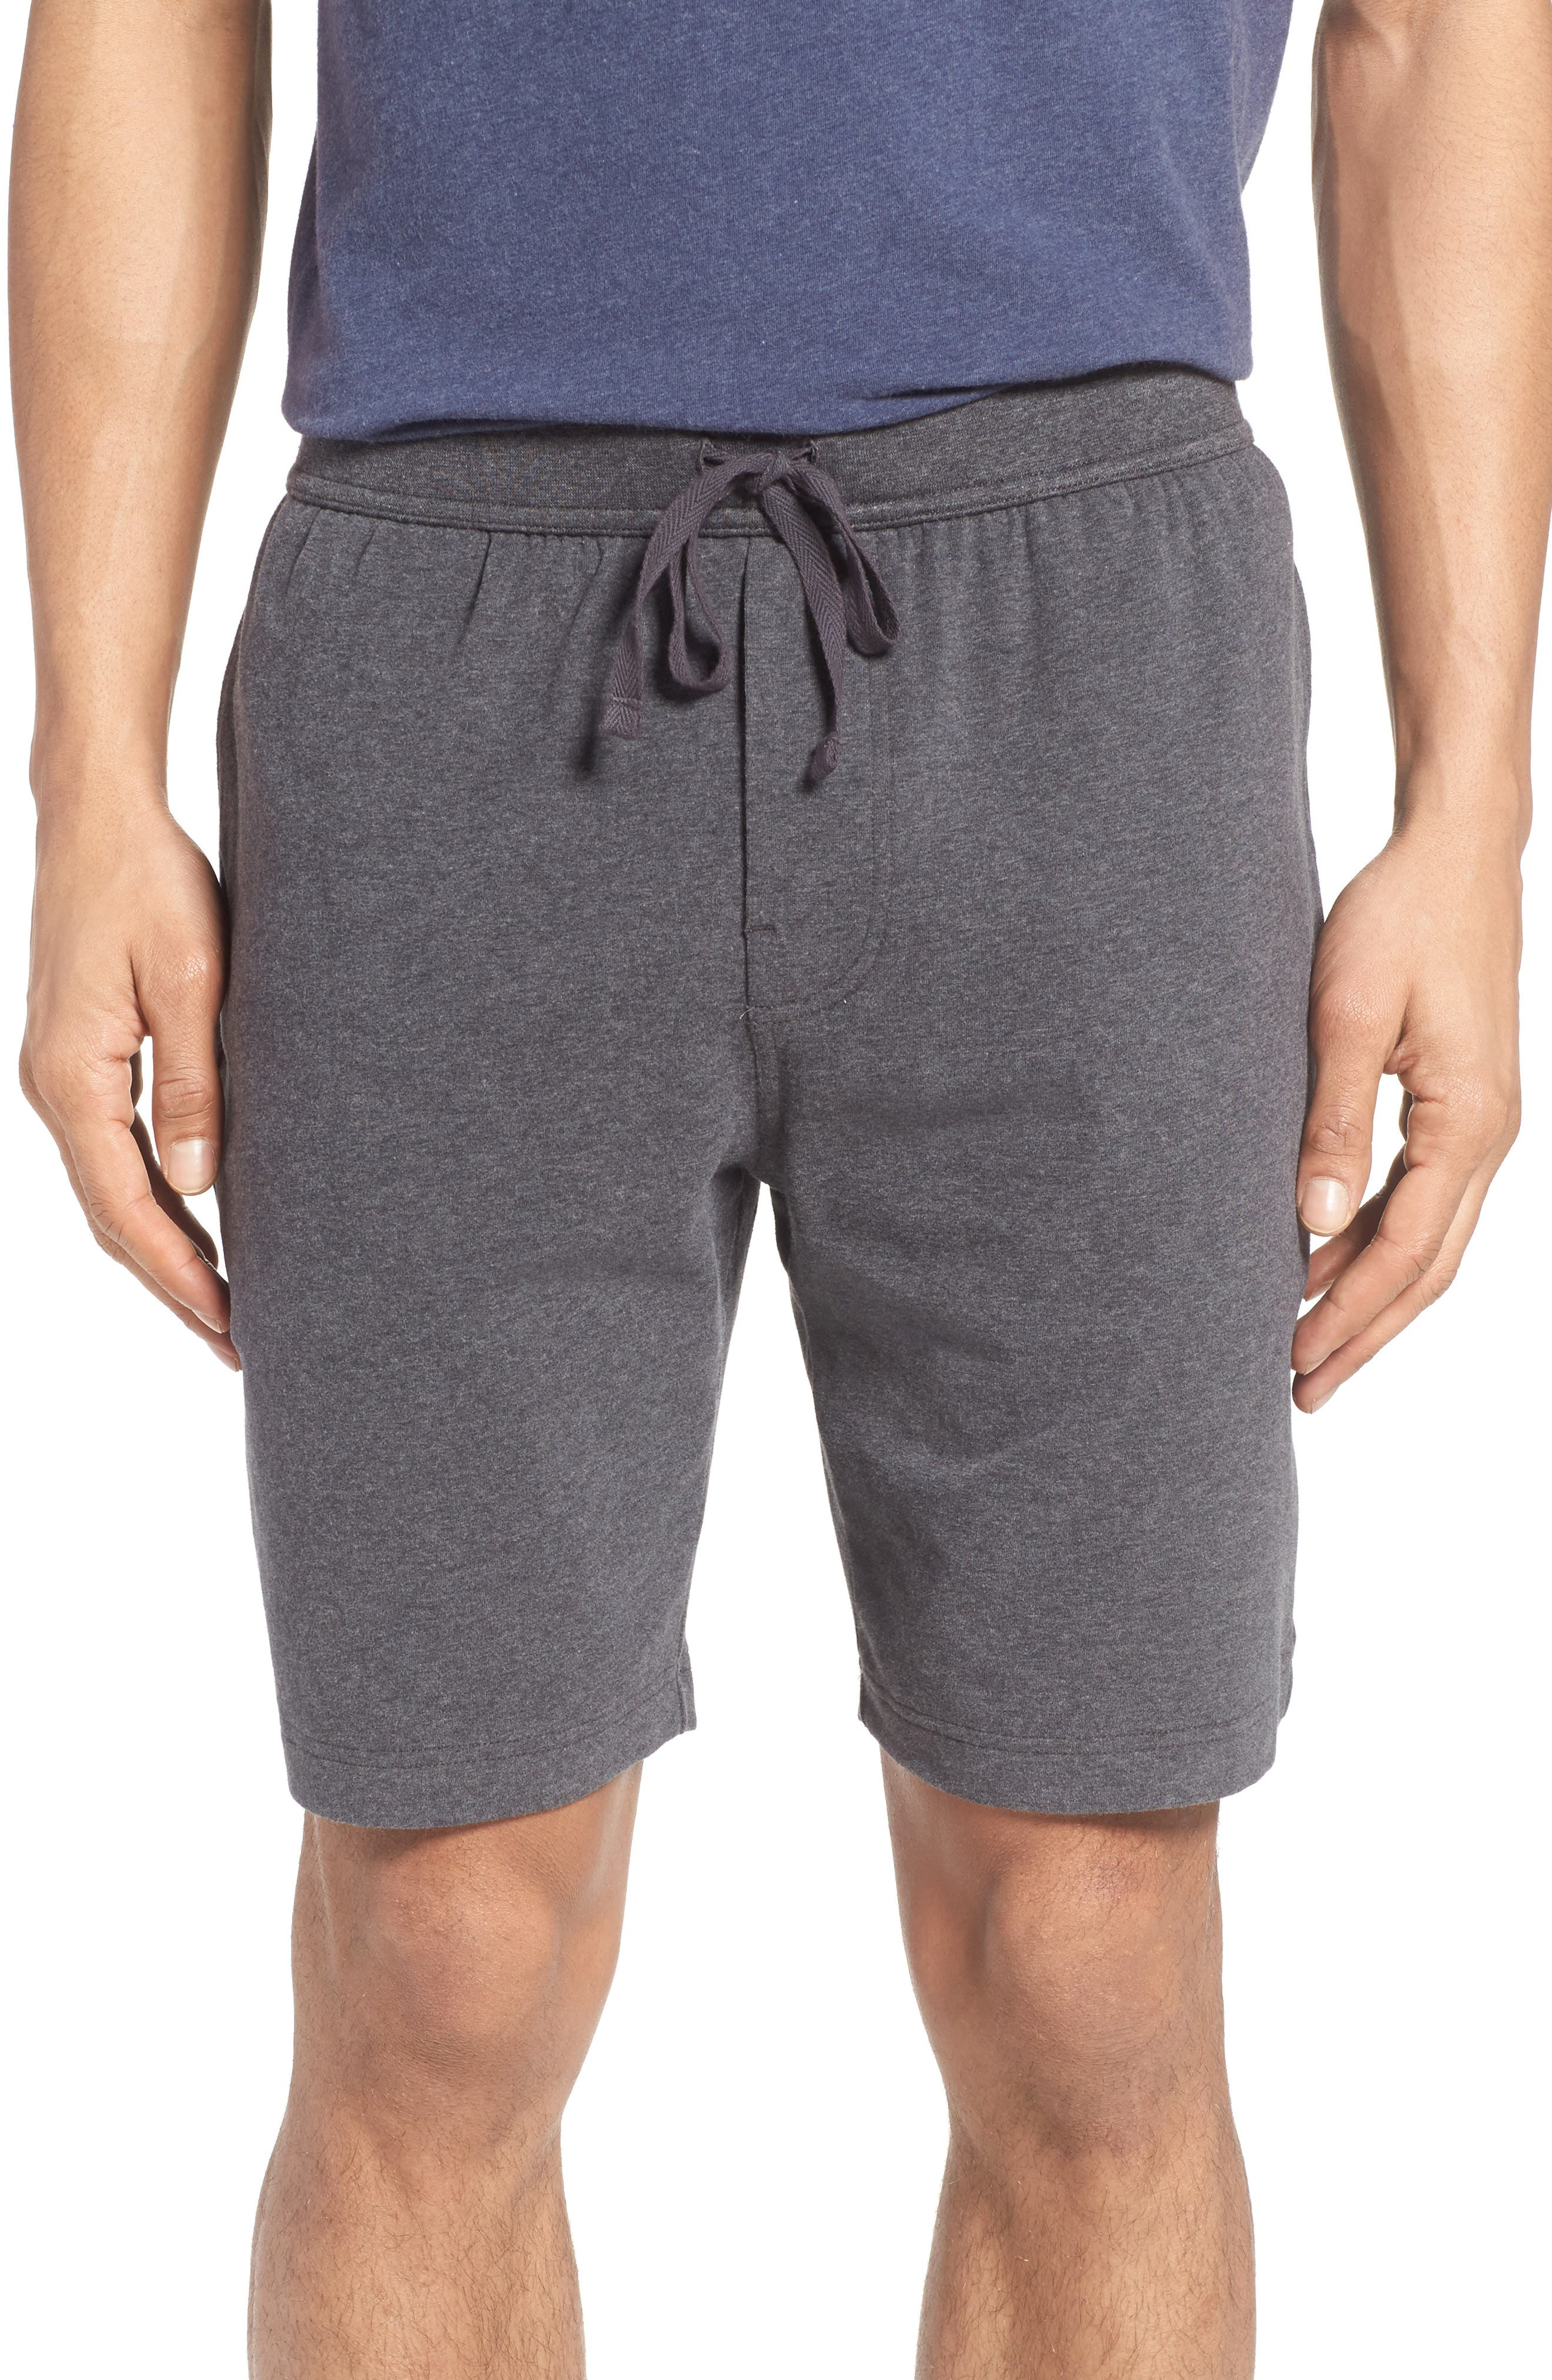 Stretch Cotton Lounge Shorts,                             Main thumbnail 1, color,                             Grey Charcoal